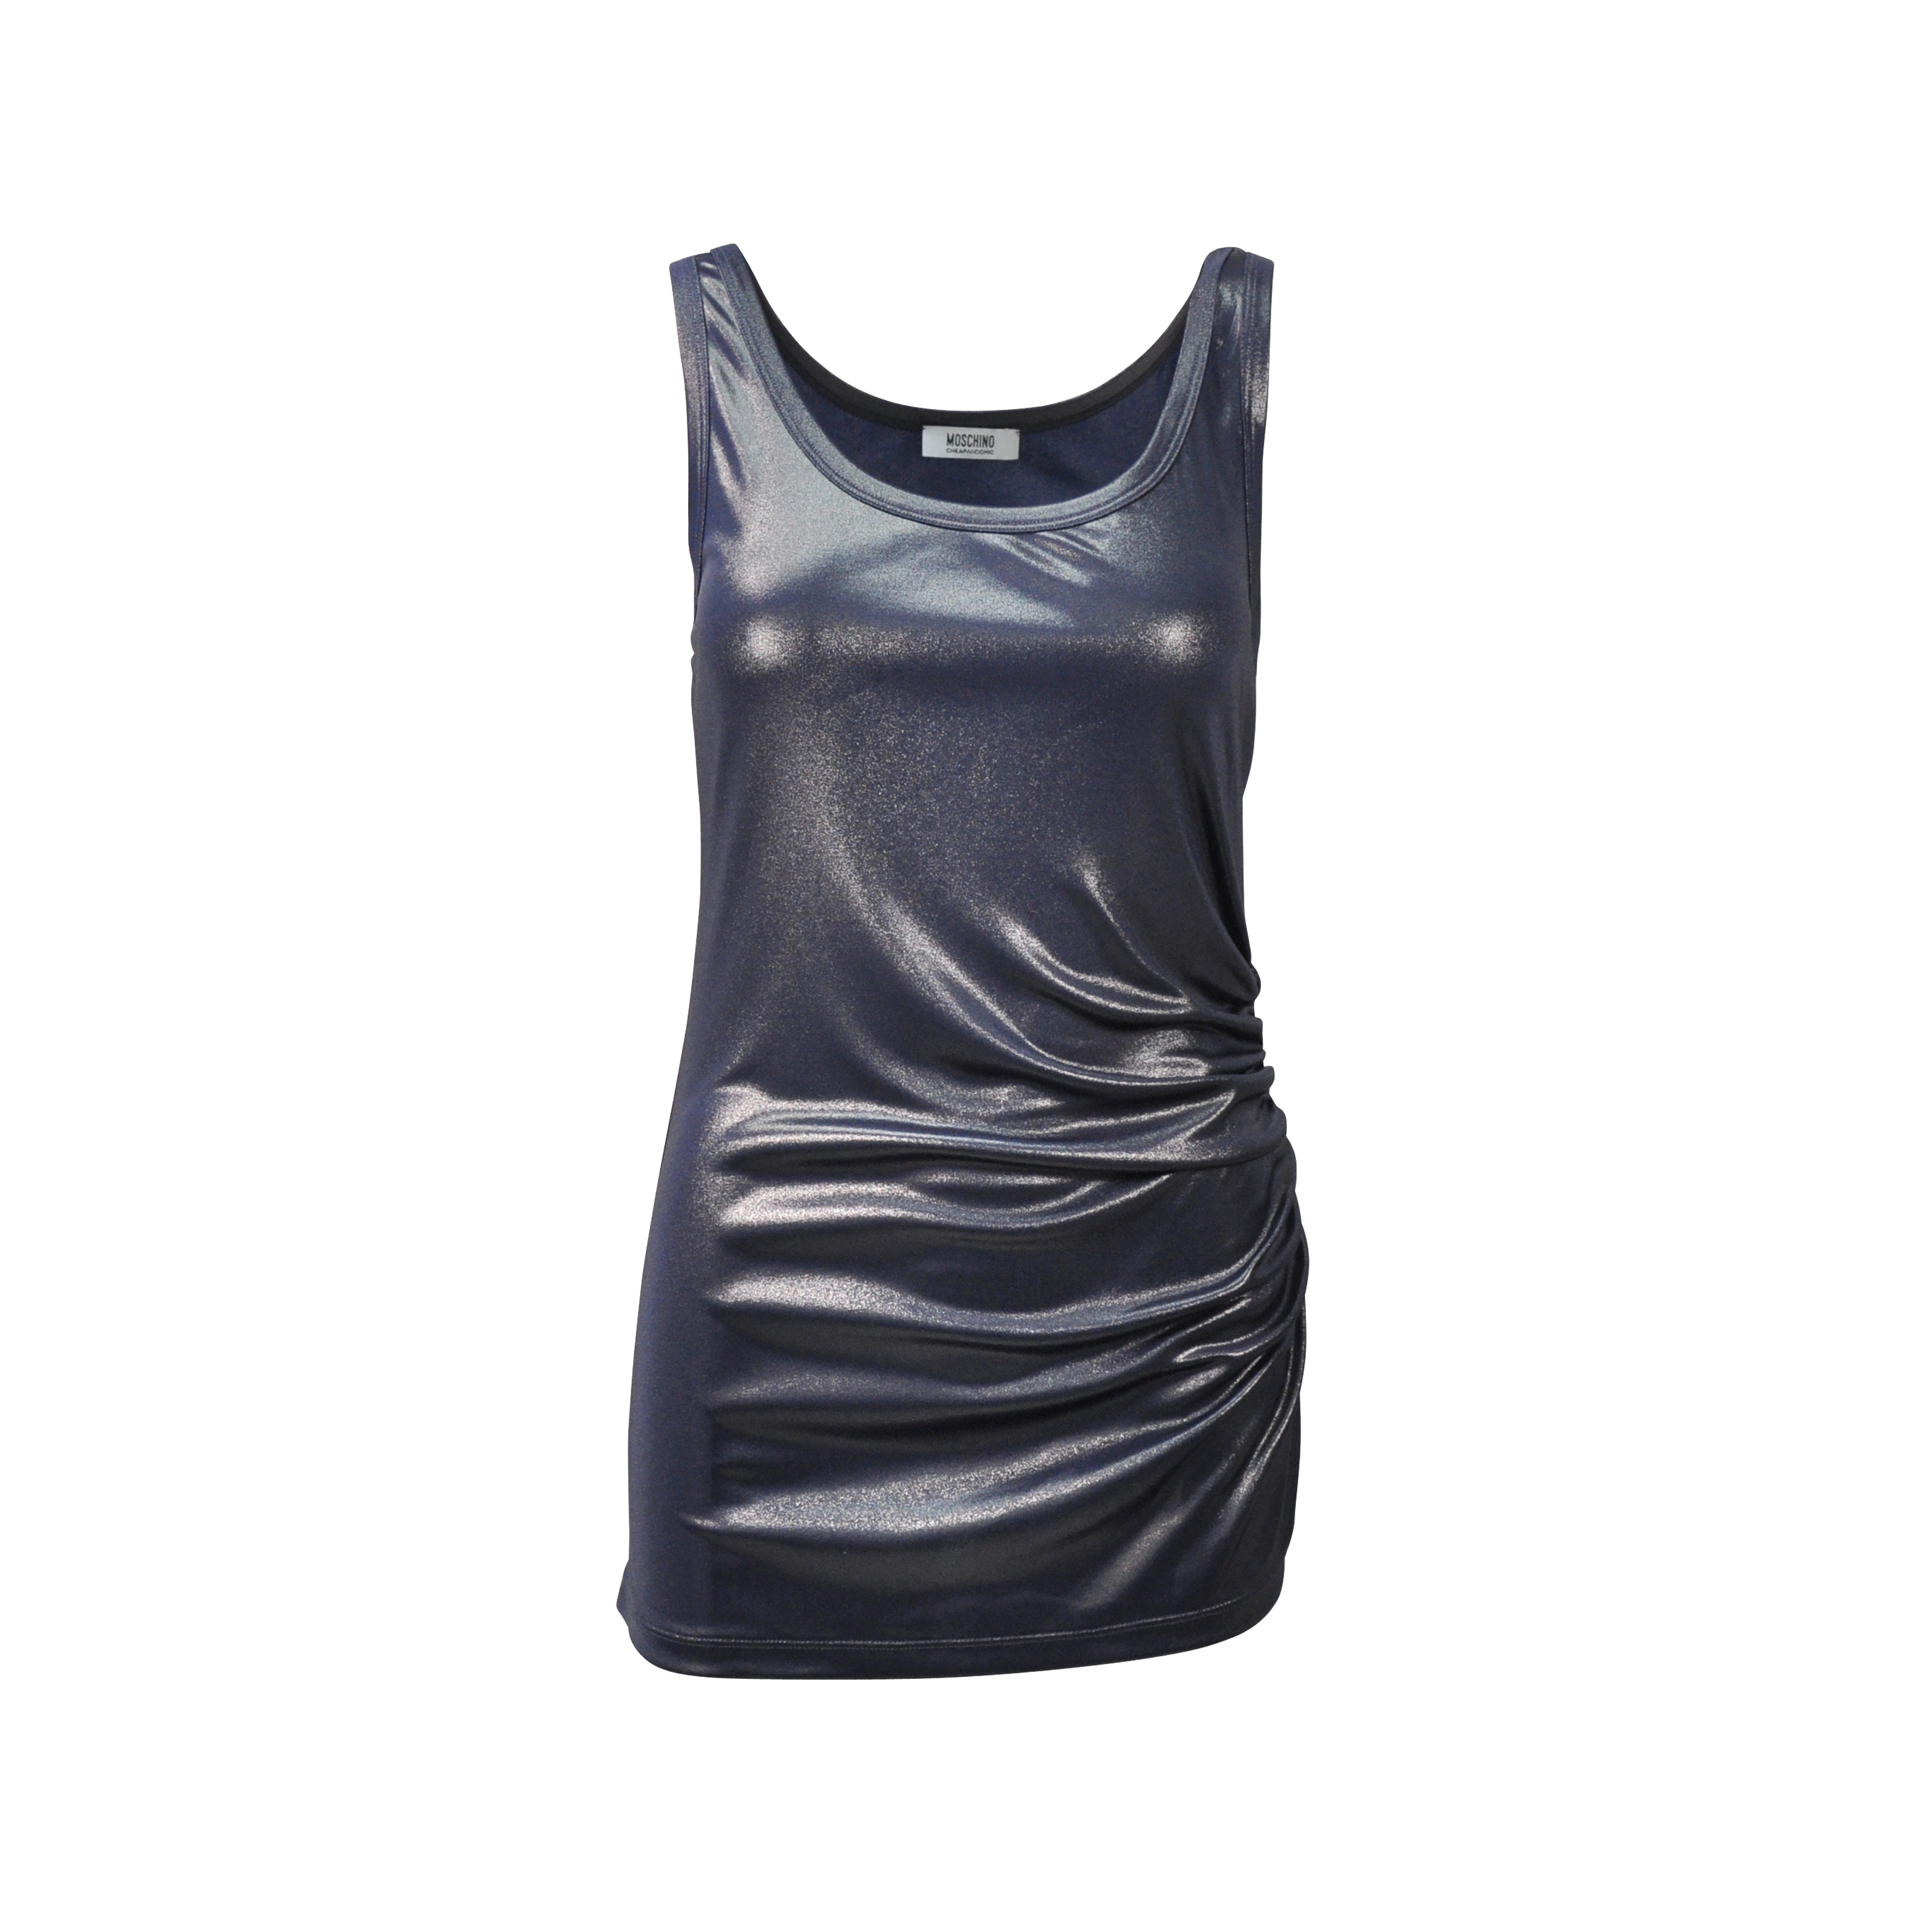 ad837d1ae5ab Authentic Second Hand Moschino Metallic Dress (PSS-200-00428) - THE FIFTH  COLLECTION